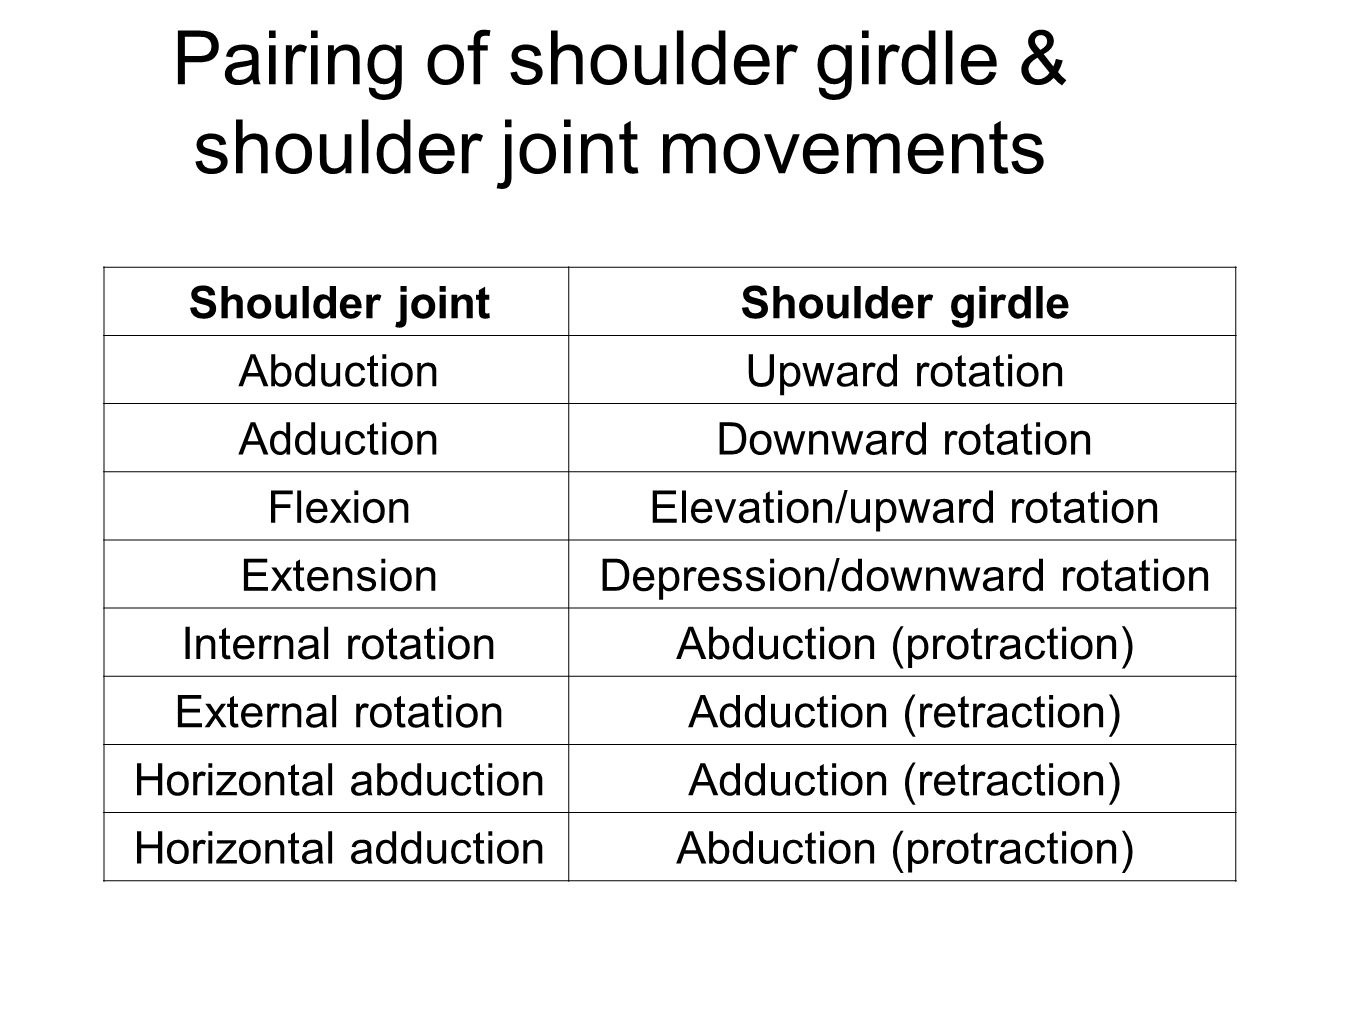 Pairing of shoulder girdle & shoulder joint movements